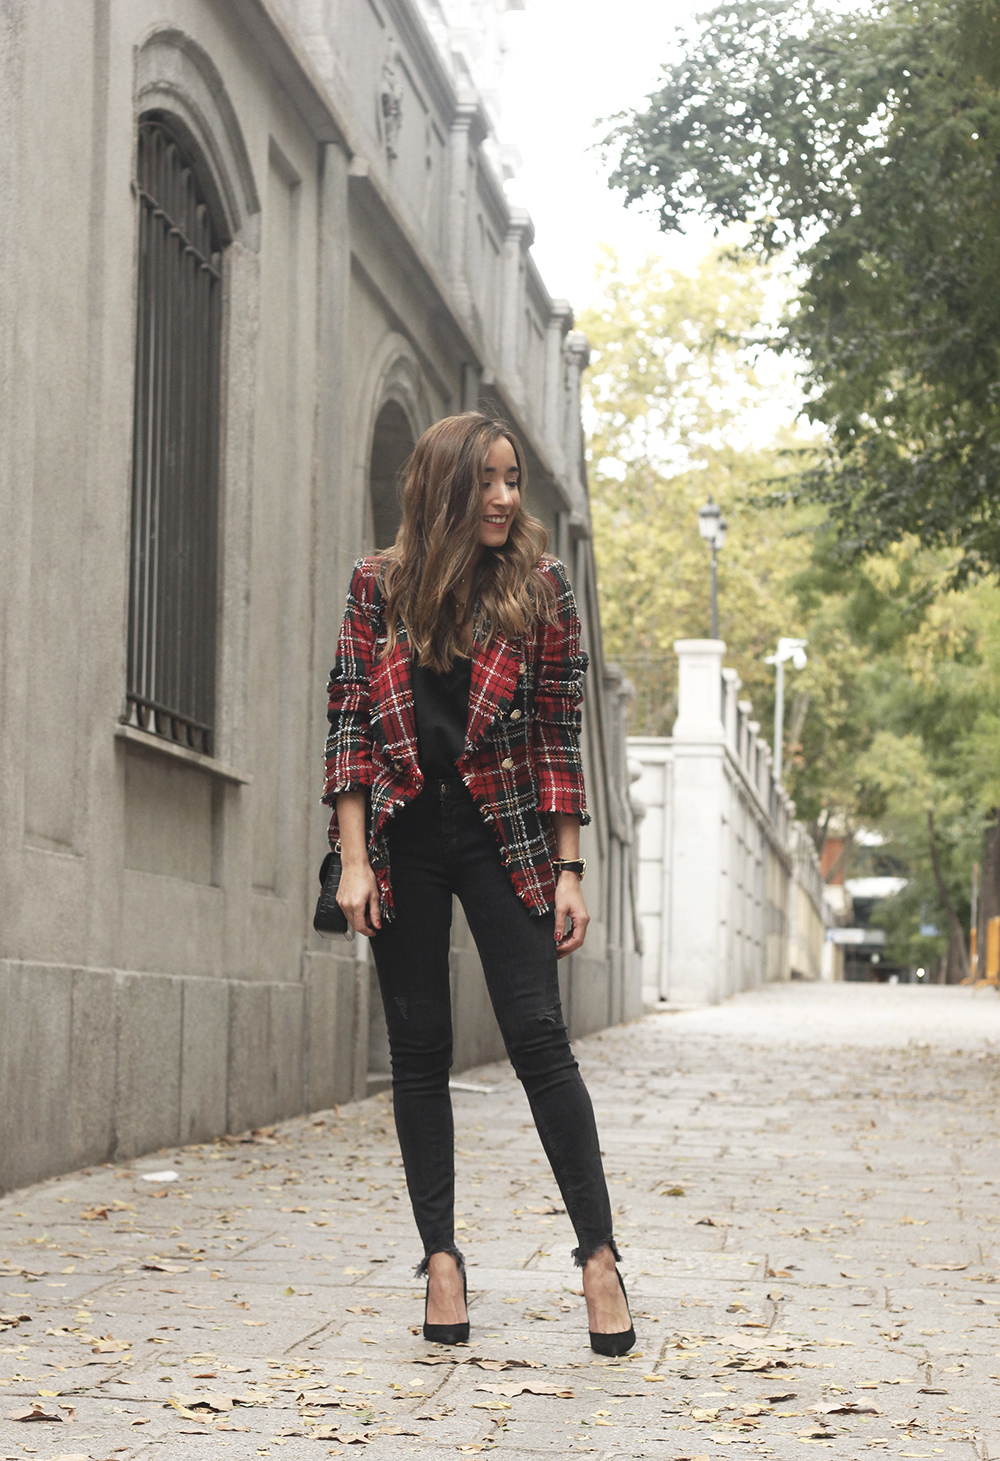 Tartan blazer black outfit heels givenchy bag street style fall outfit 20183883